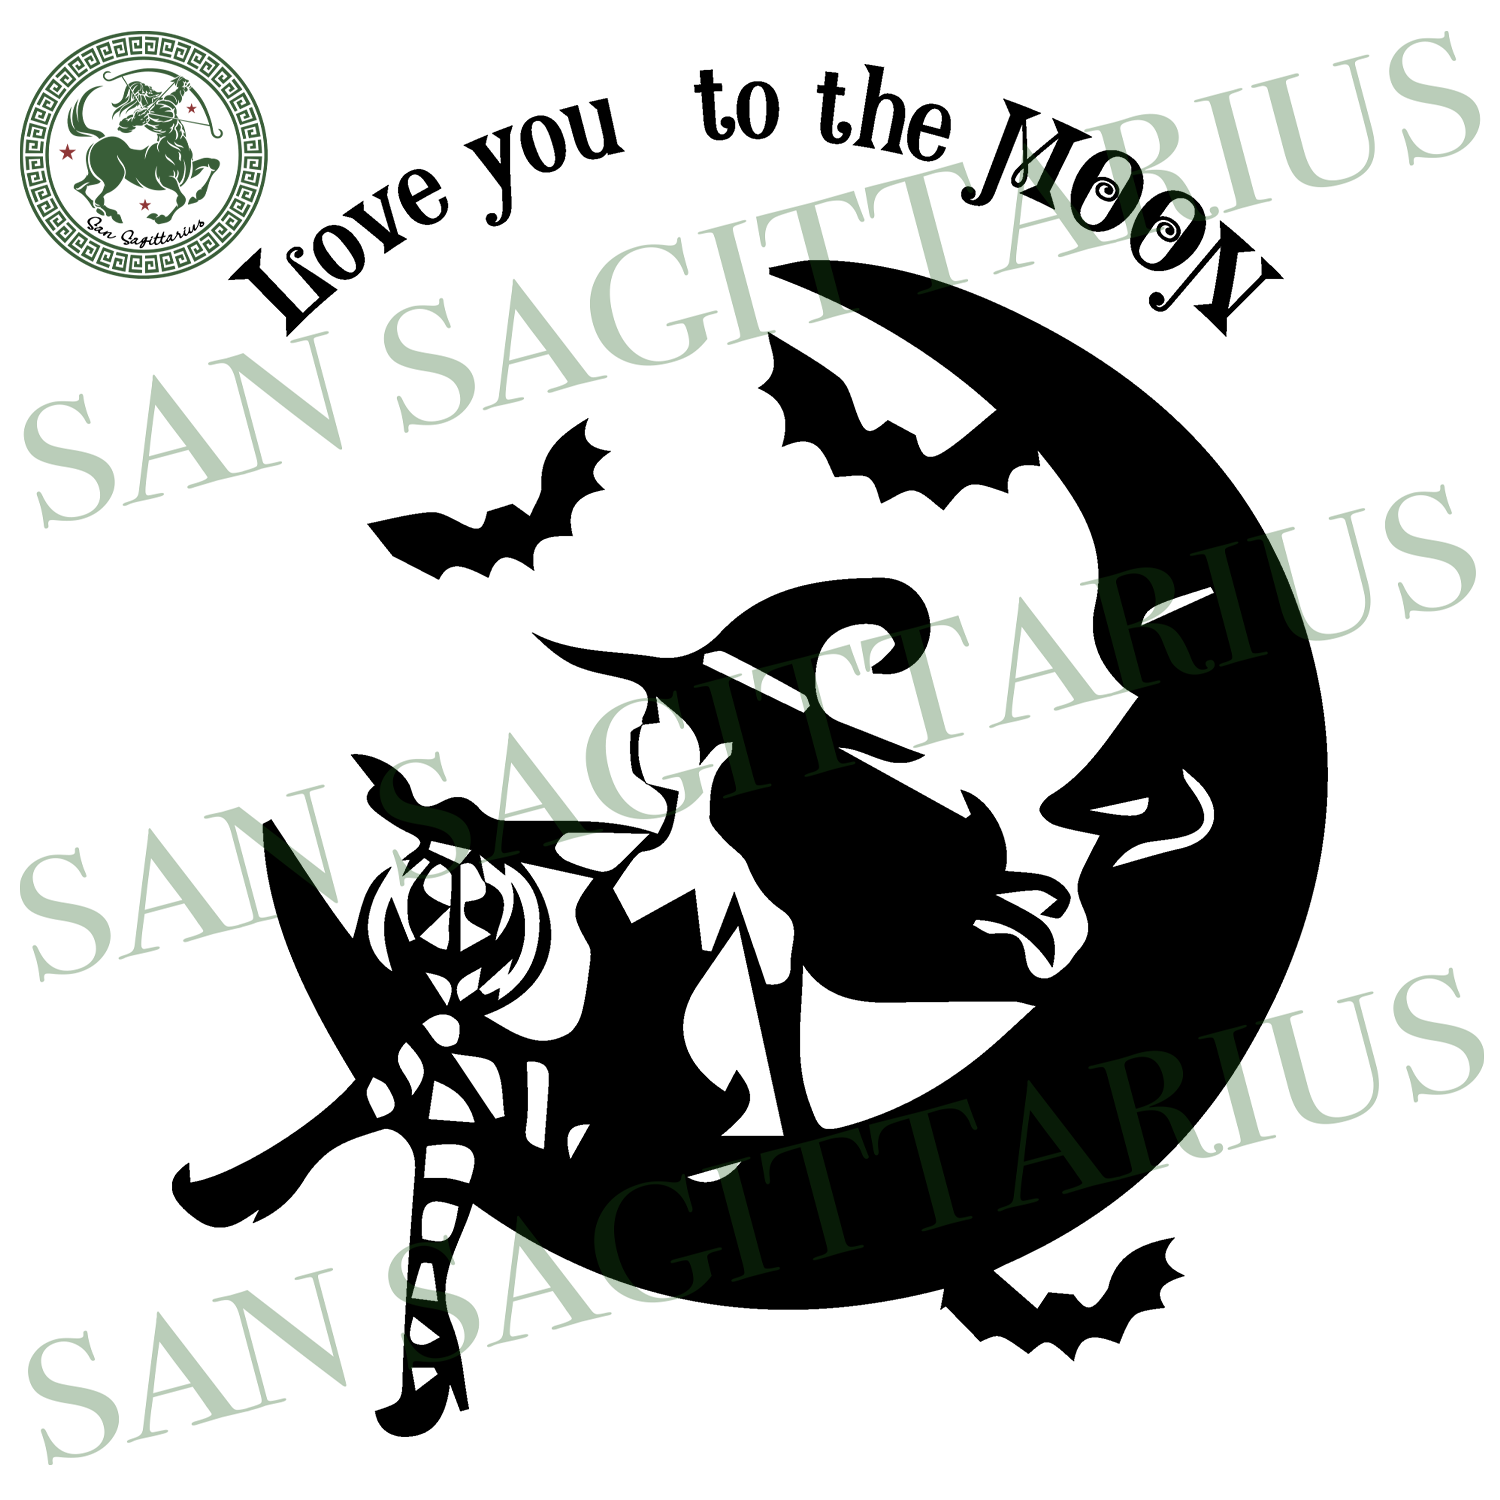 Love You To The Moon, Halloween Svg, Witches Svg, Witch Girl Vector, Witch Quotes, Witch Saying, Witch Shirt Svg, Witch Gift Svg, Halloween Shirt, Scary Halloween, Halloween Svg, Halloween Ve